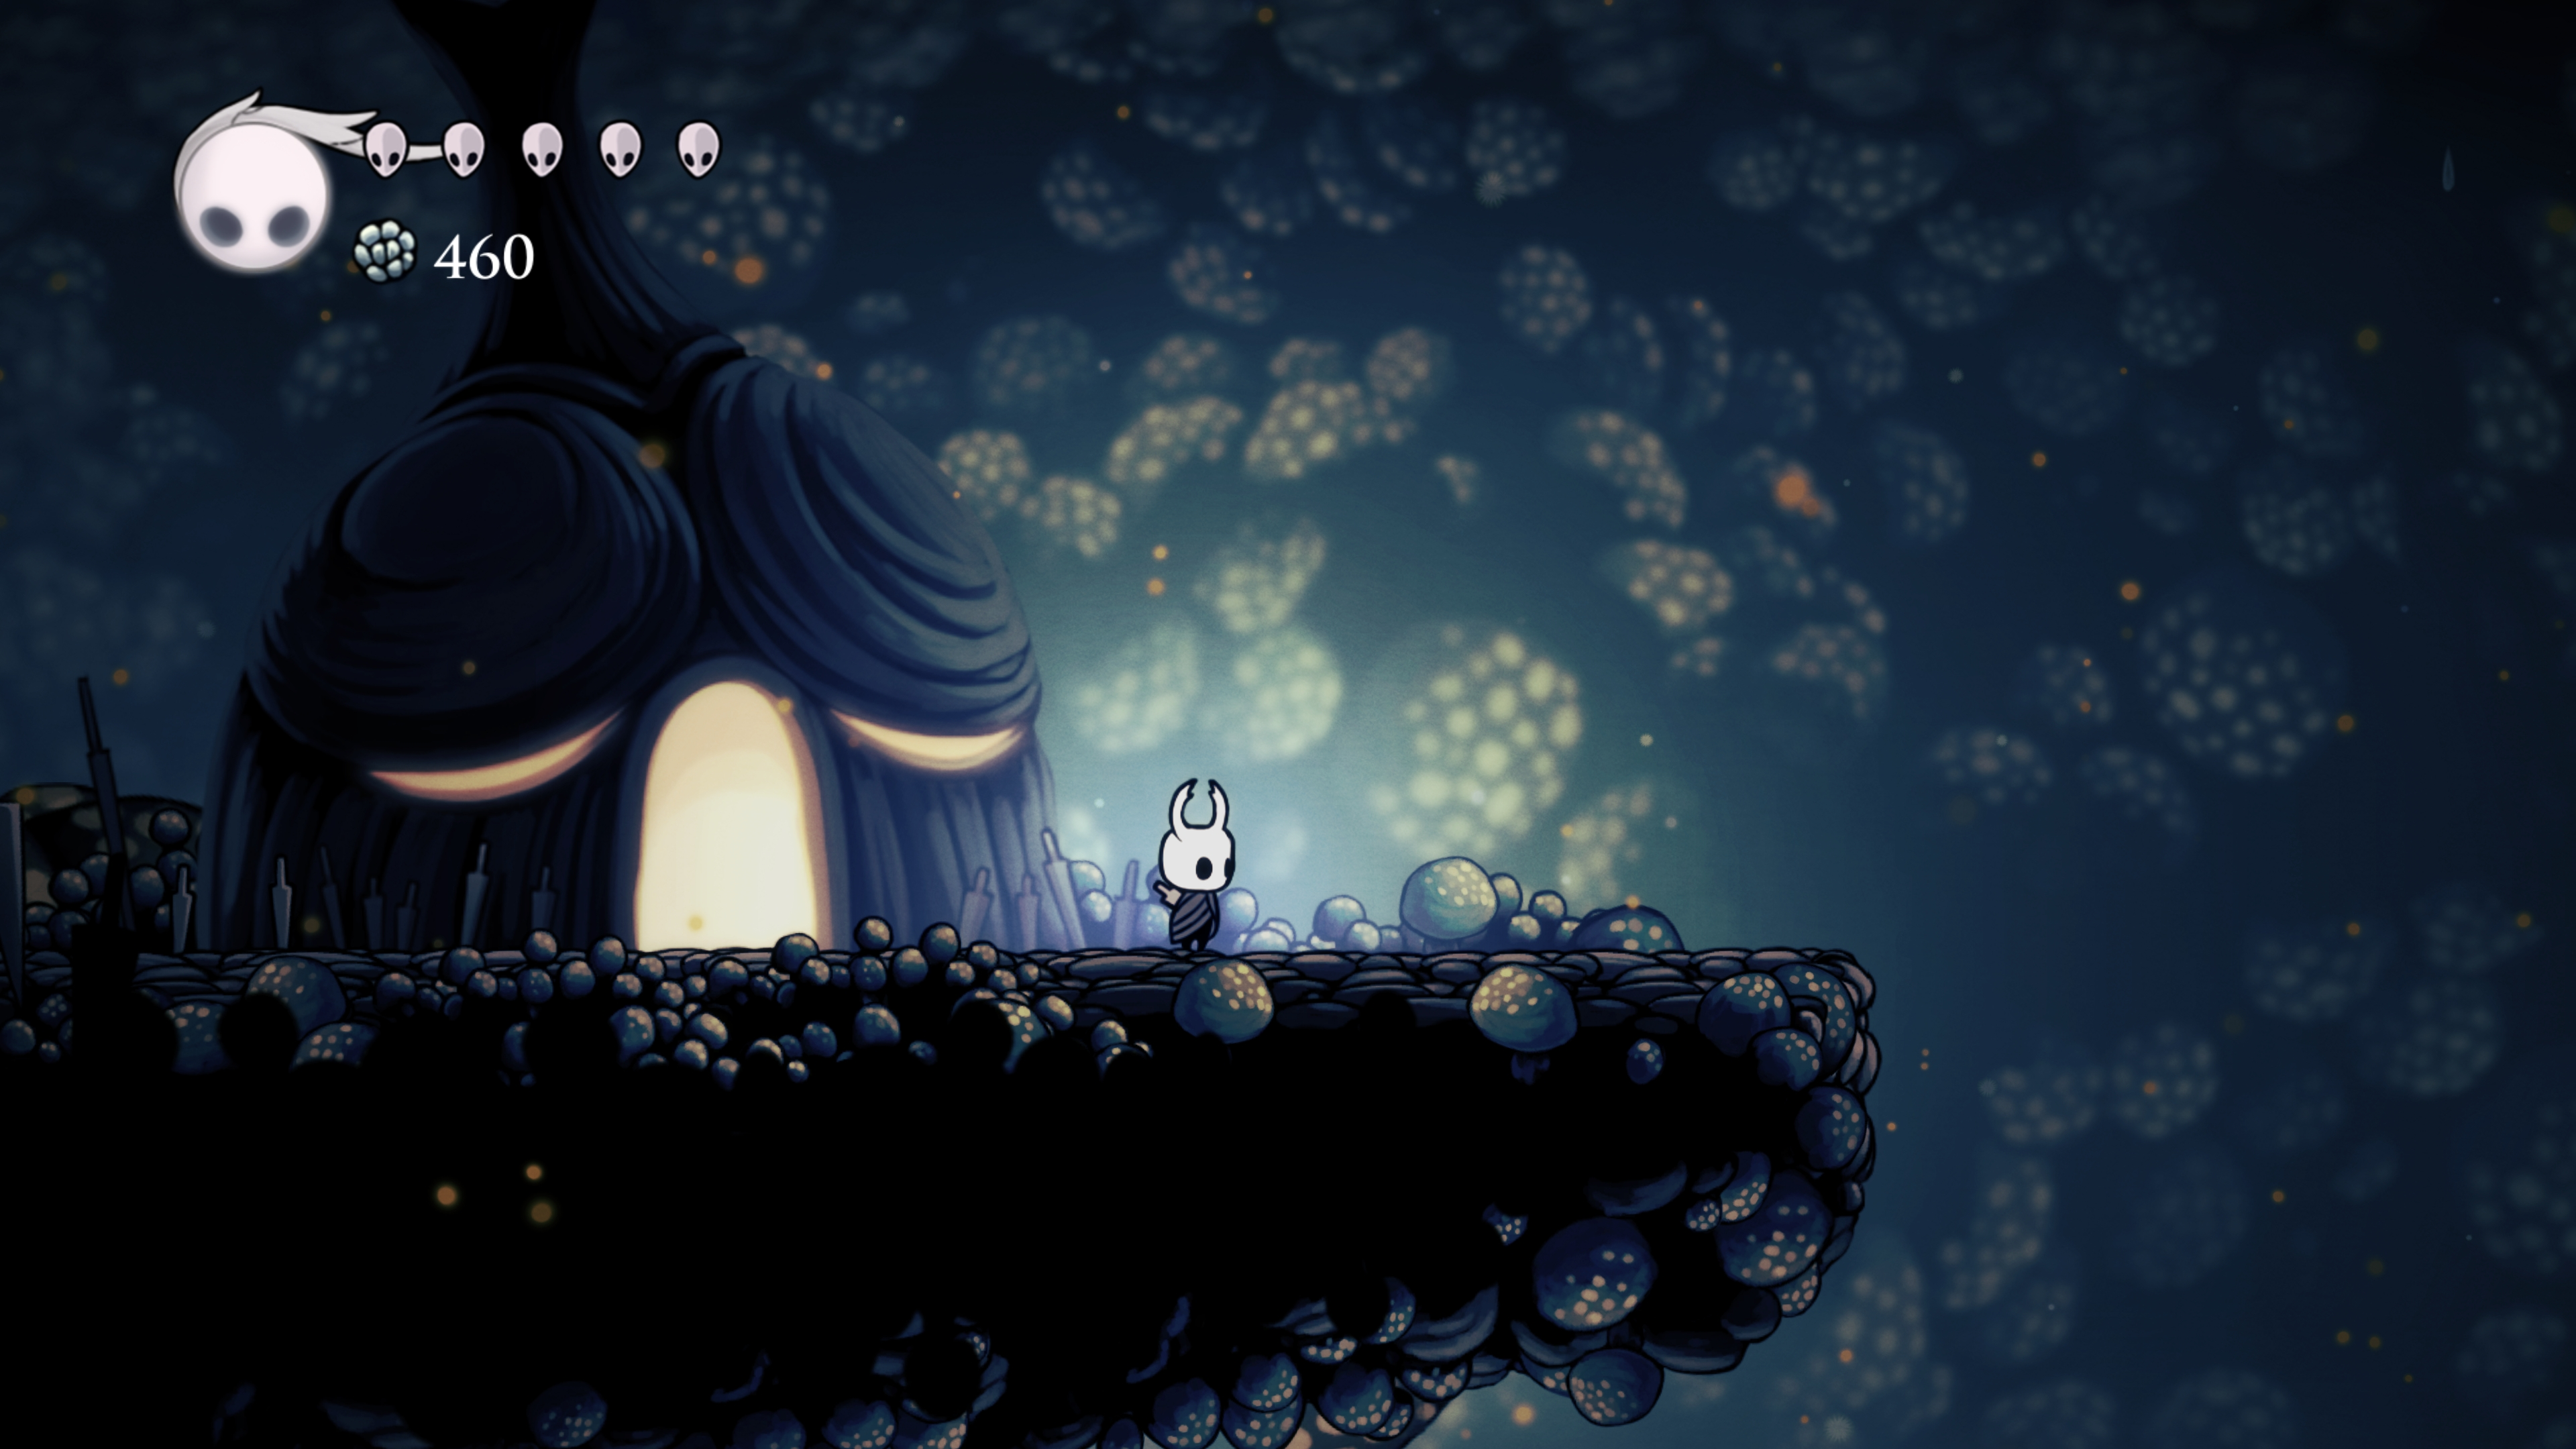 3 surface pro wallpaper 2160x1440 - Video Game Hollow Knight Wallpaper